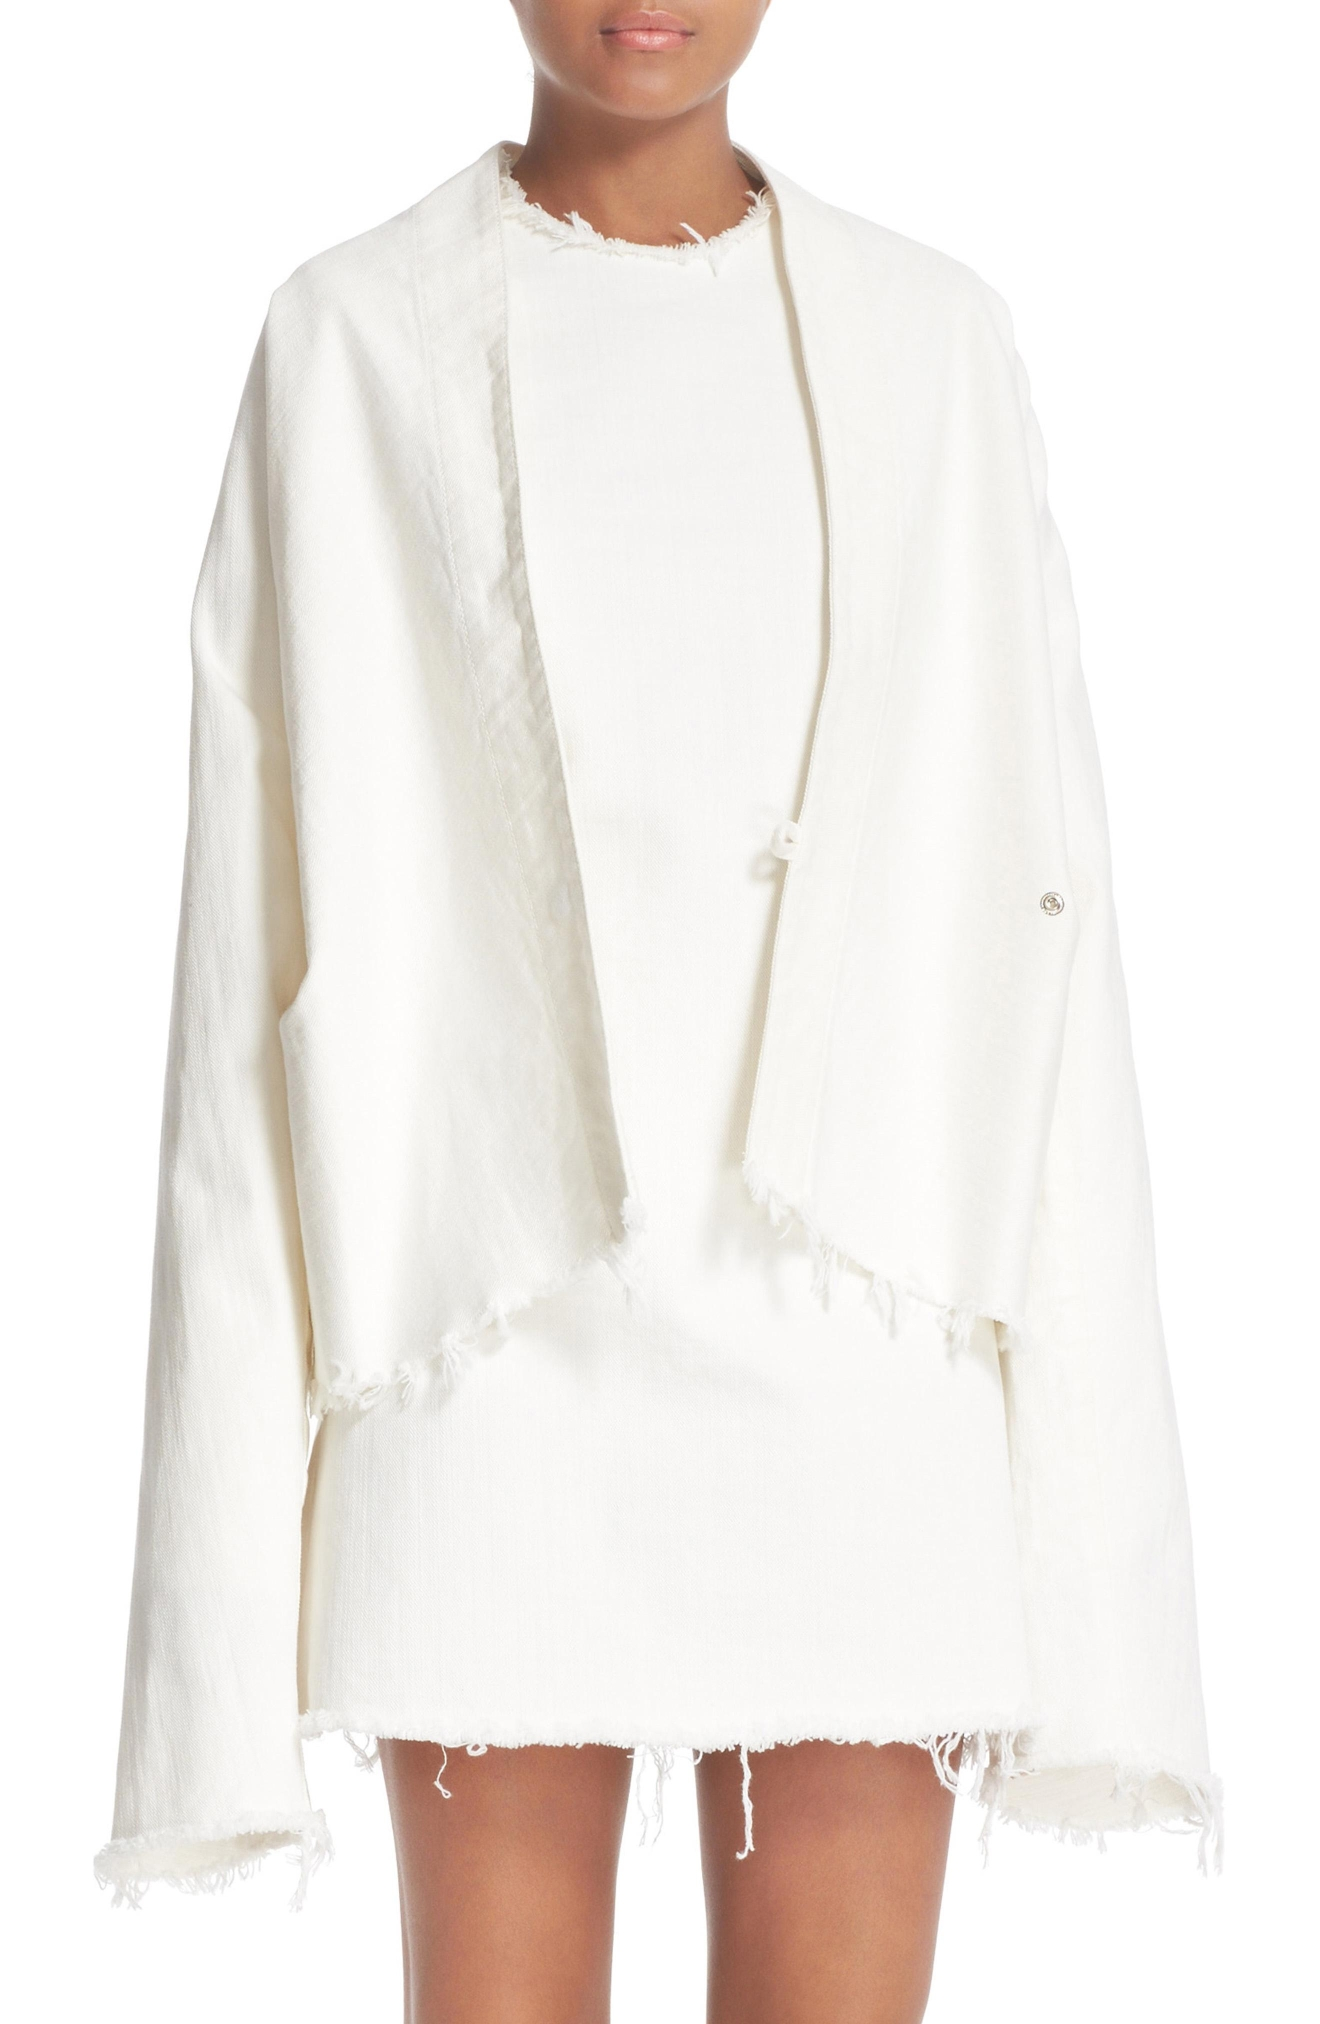 Marques'Almeida Draped Fitted Jacket + Janis Dress- $710. Get it at nordstrom.com/space. (Image: Nordstrom)